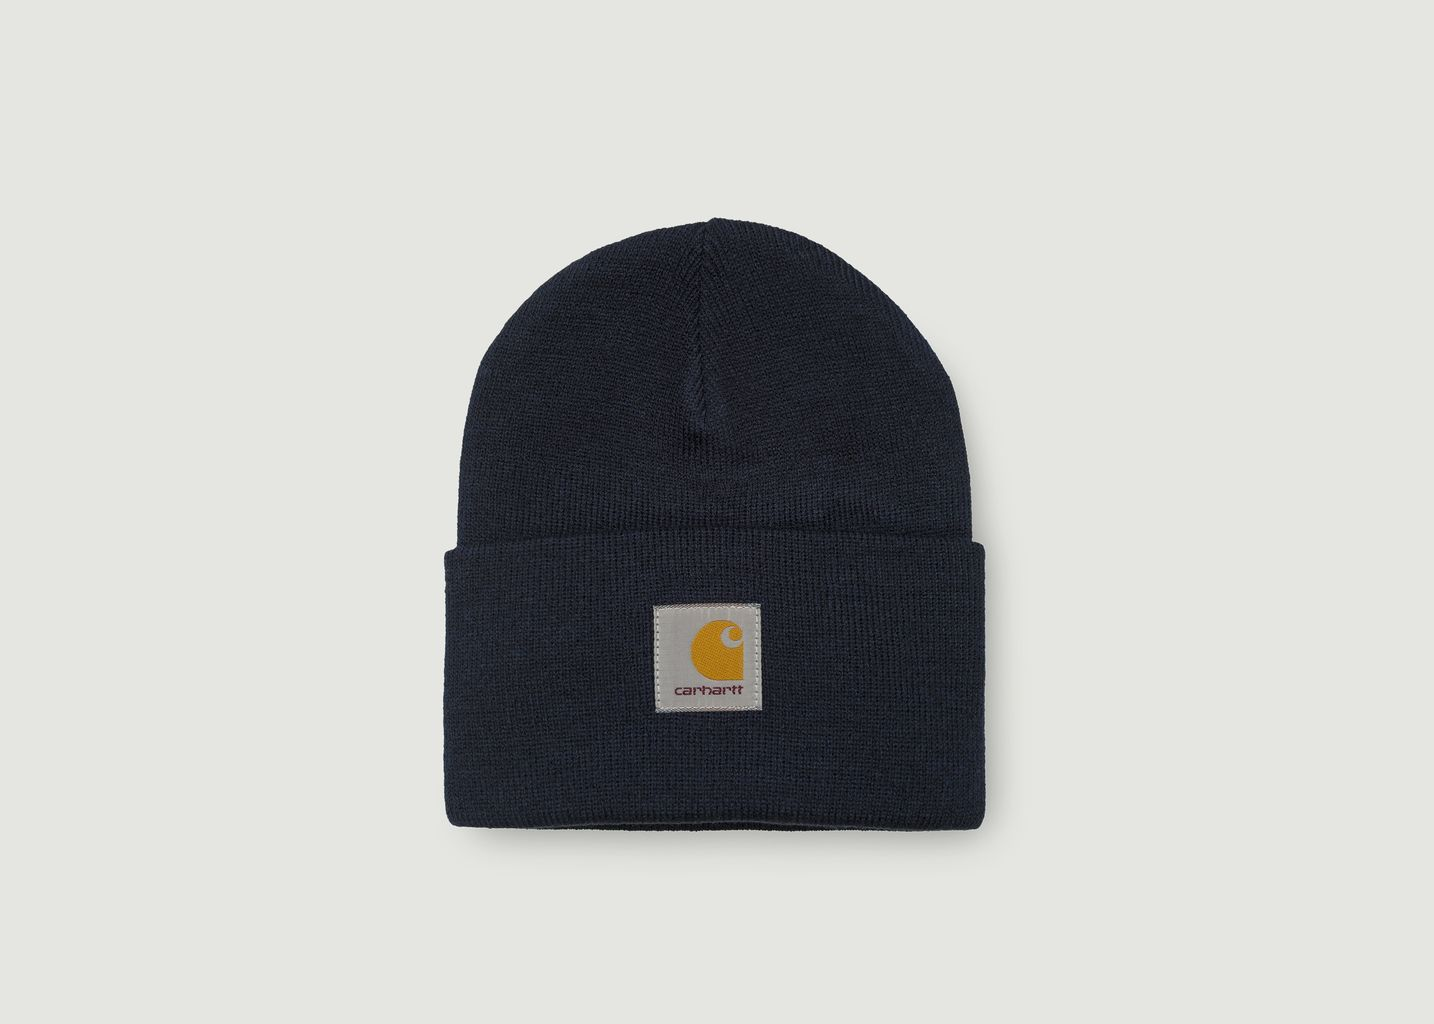 Bonnet Watch - Carhartt WIP